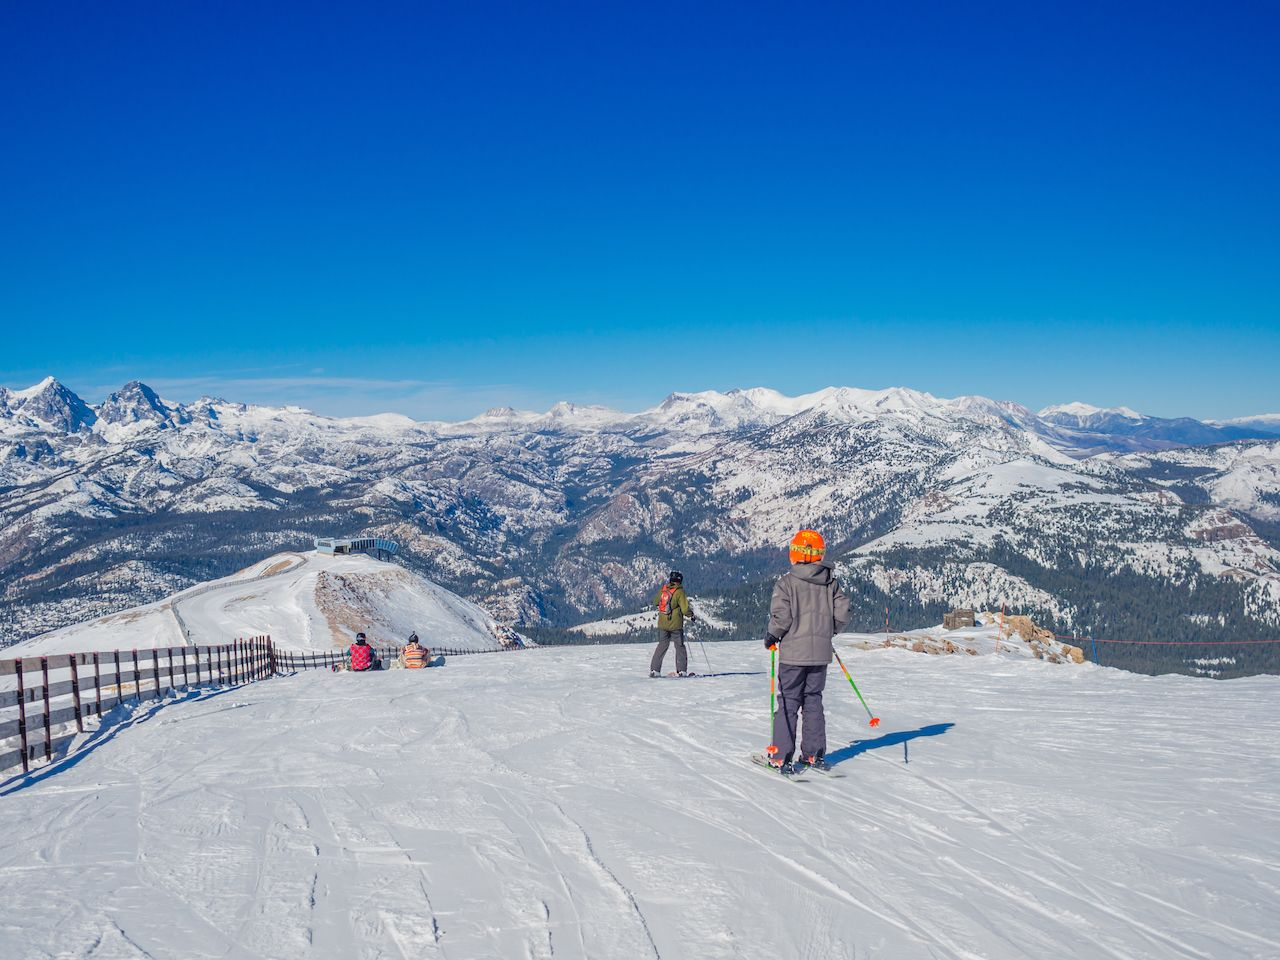 Beautiful day at Mammoth Mountain Ski Area in the eastern Sierra Nevada mountains of California